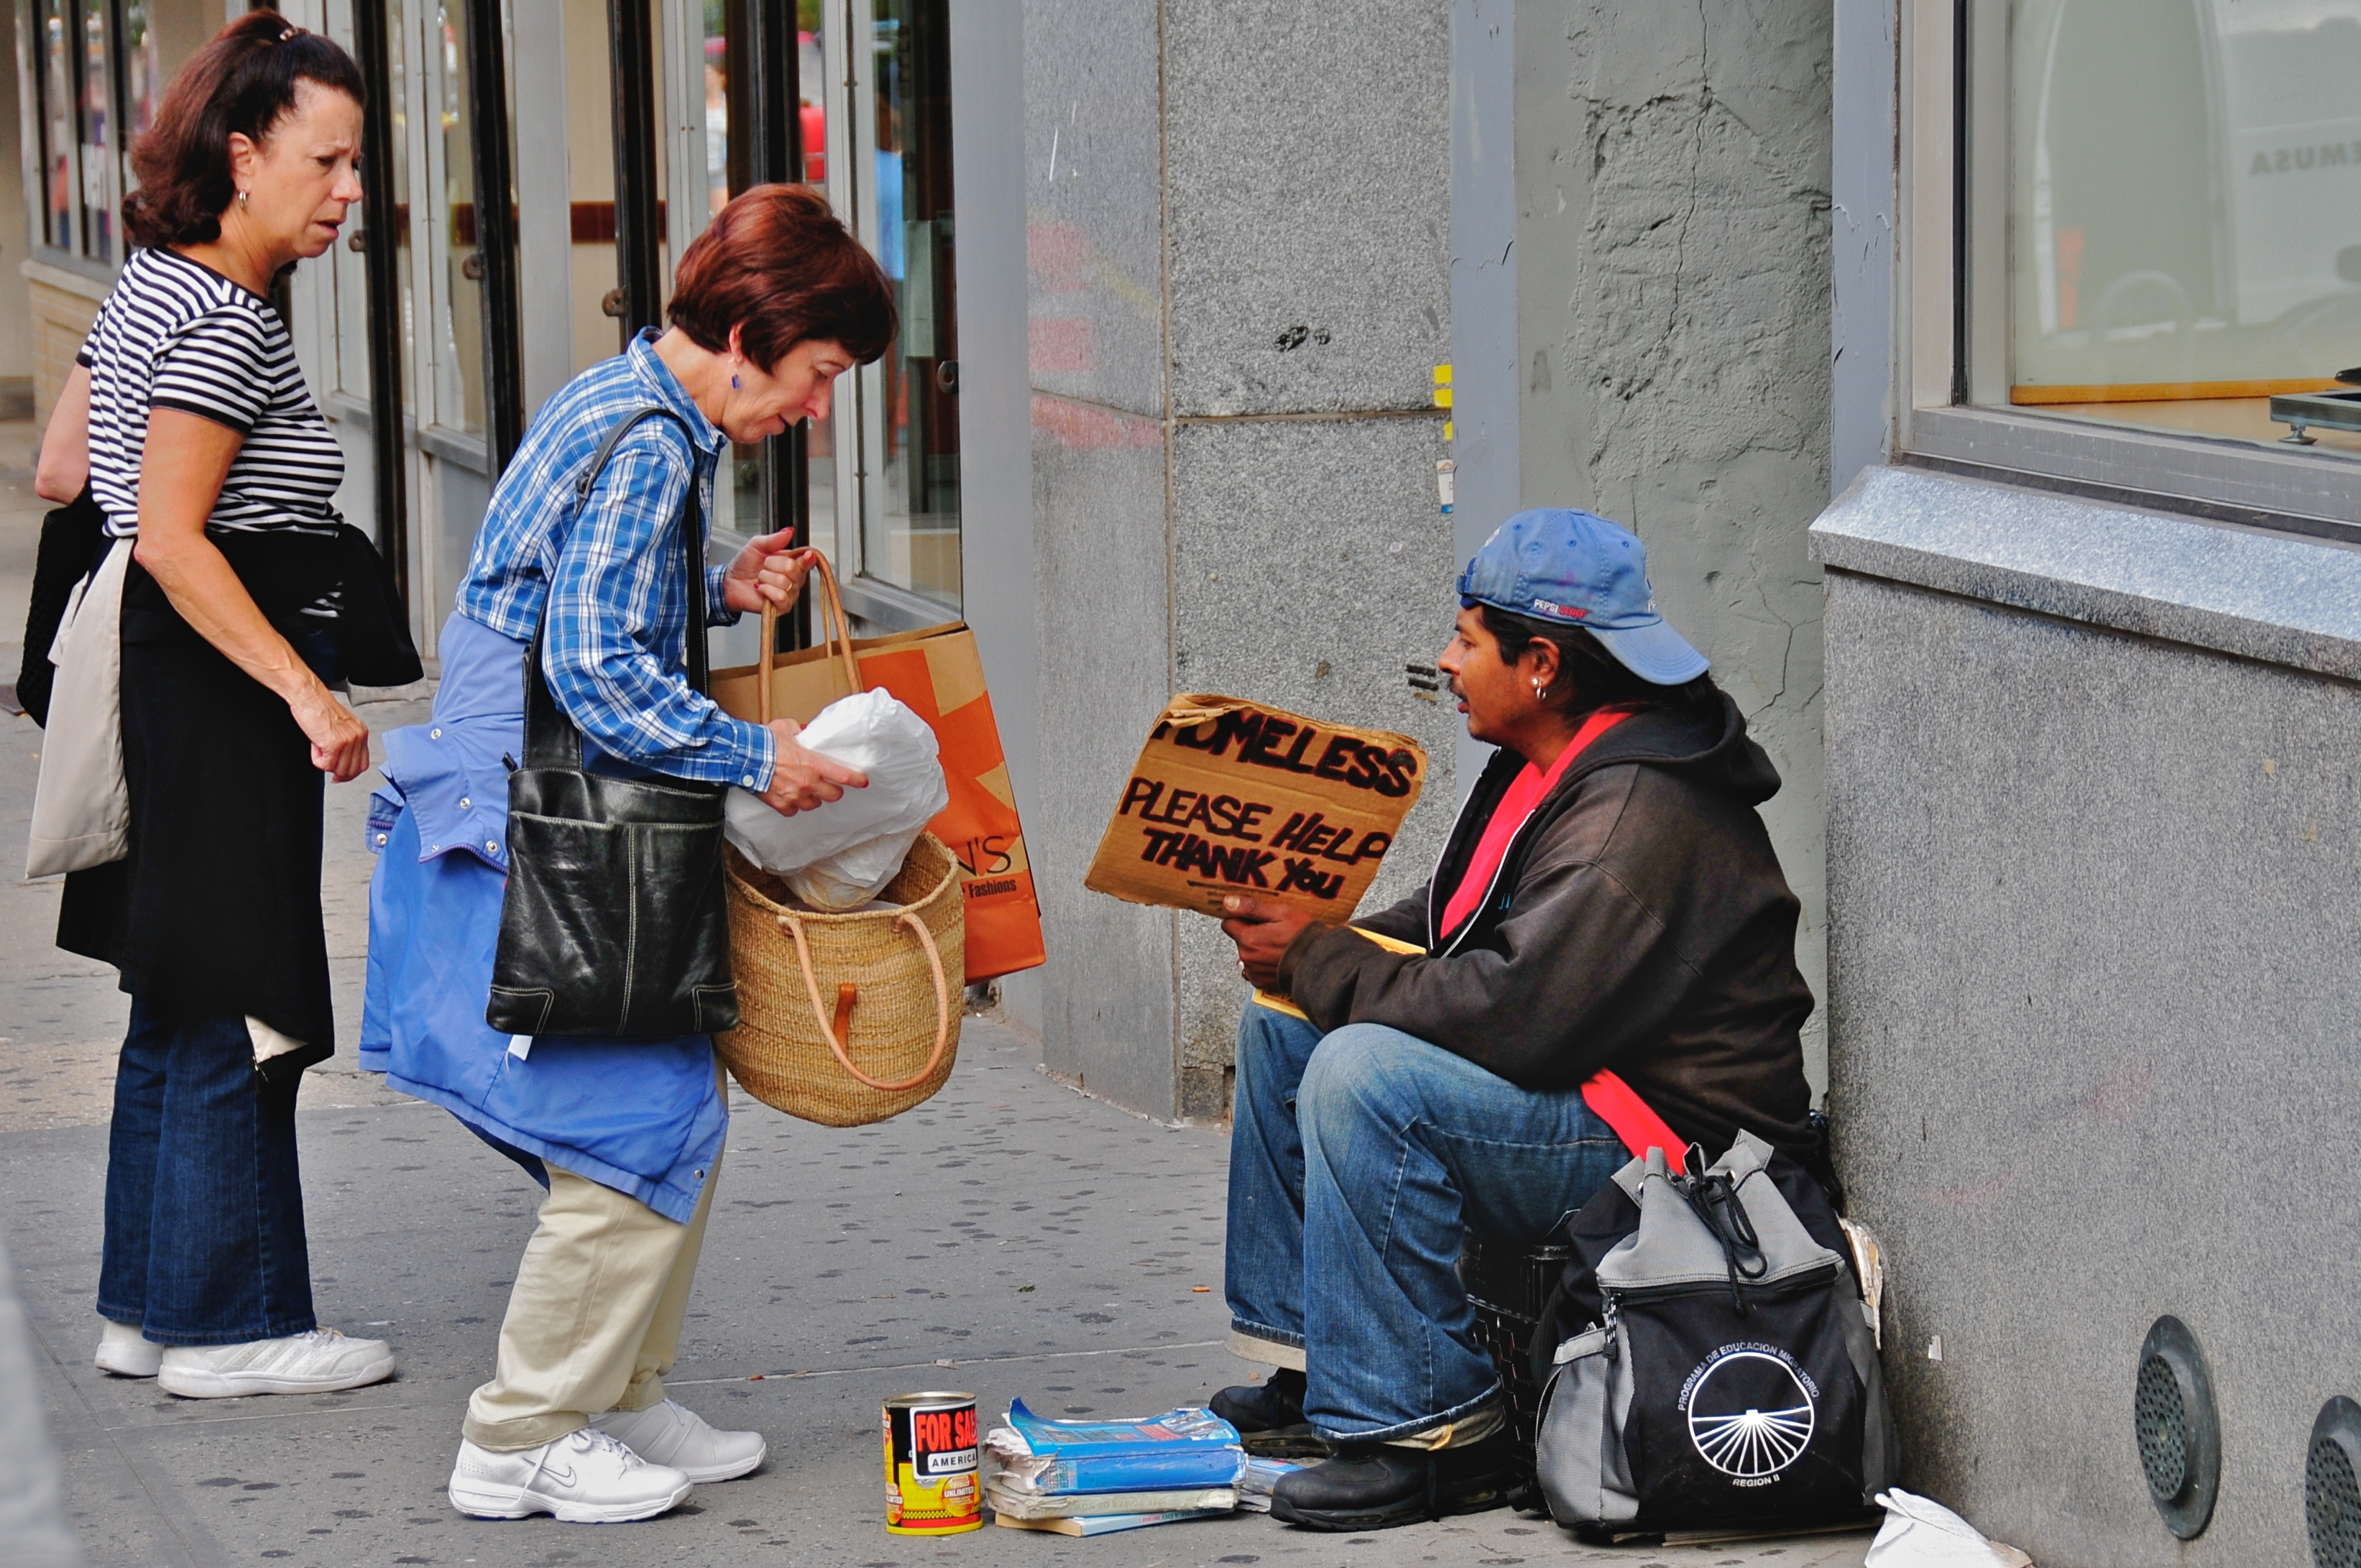 Helping_the_homeless.jpg?profile=RESIZE_710x